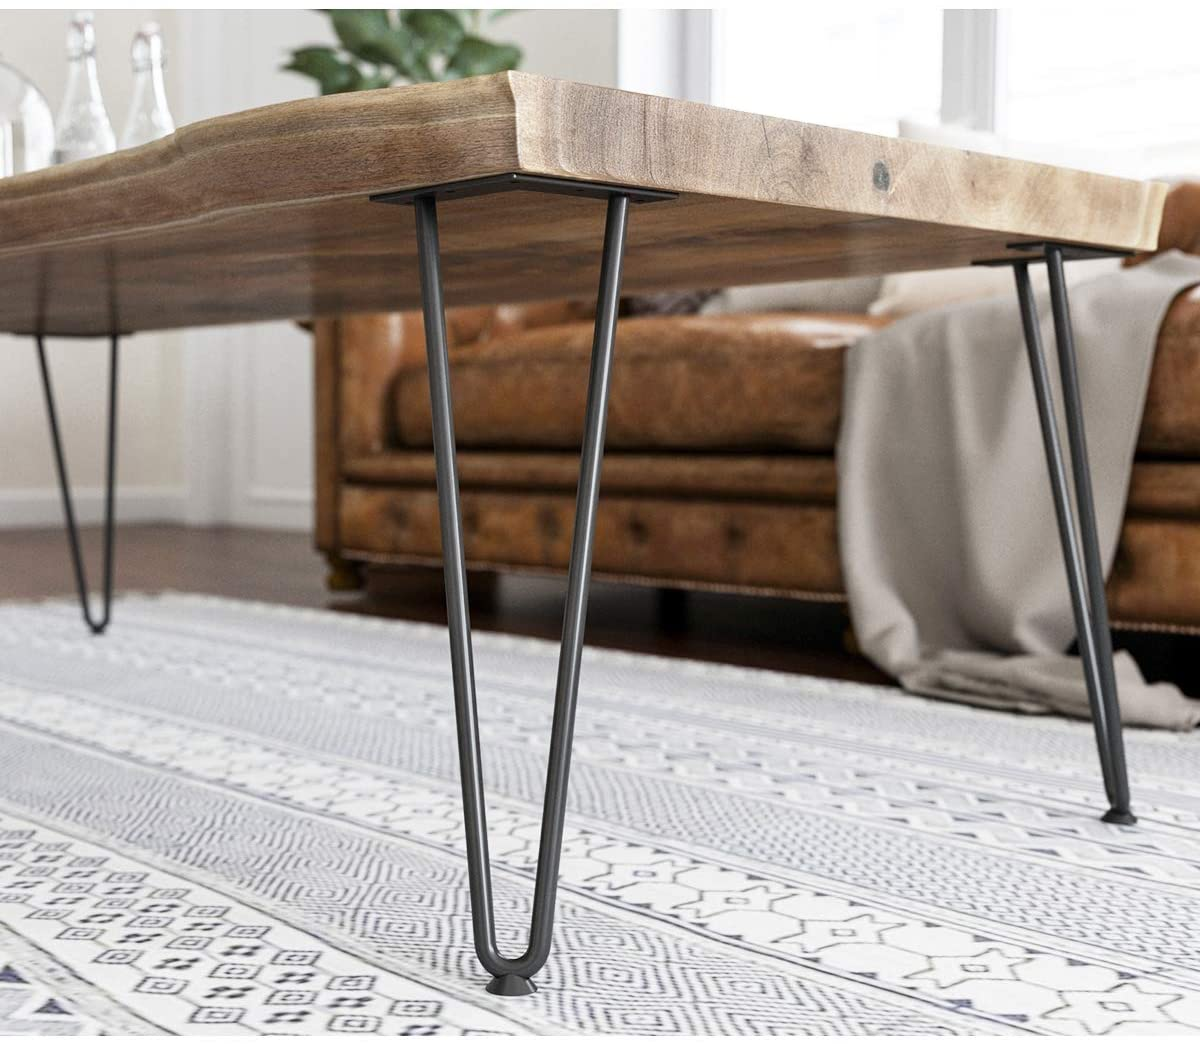 Wood table with thin metal legs